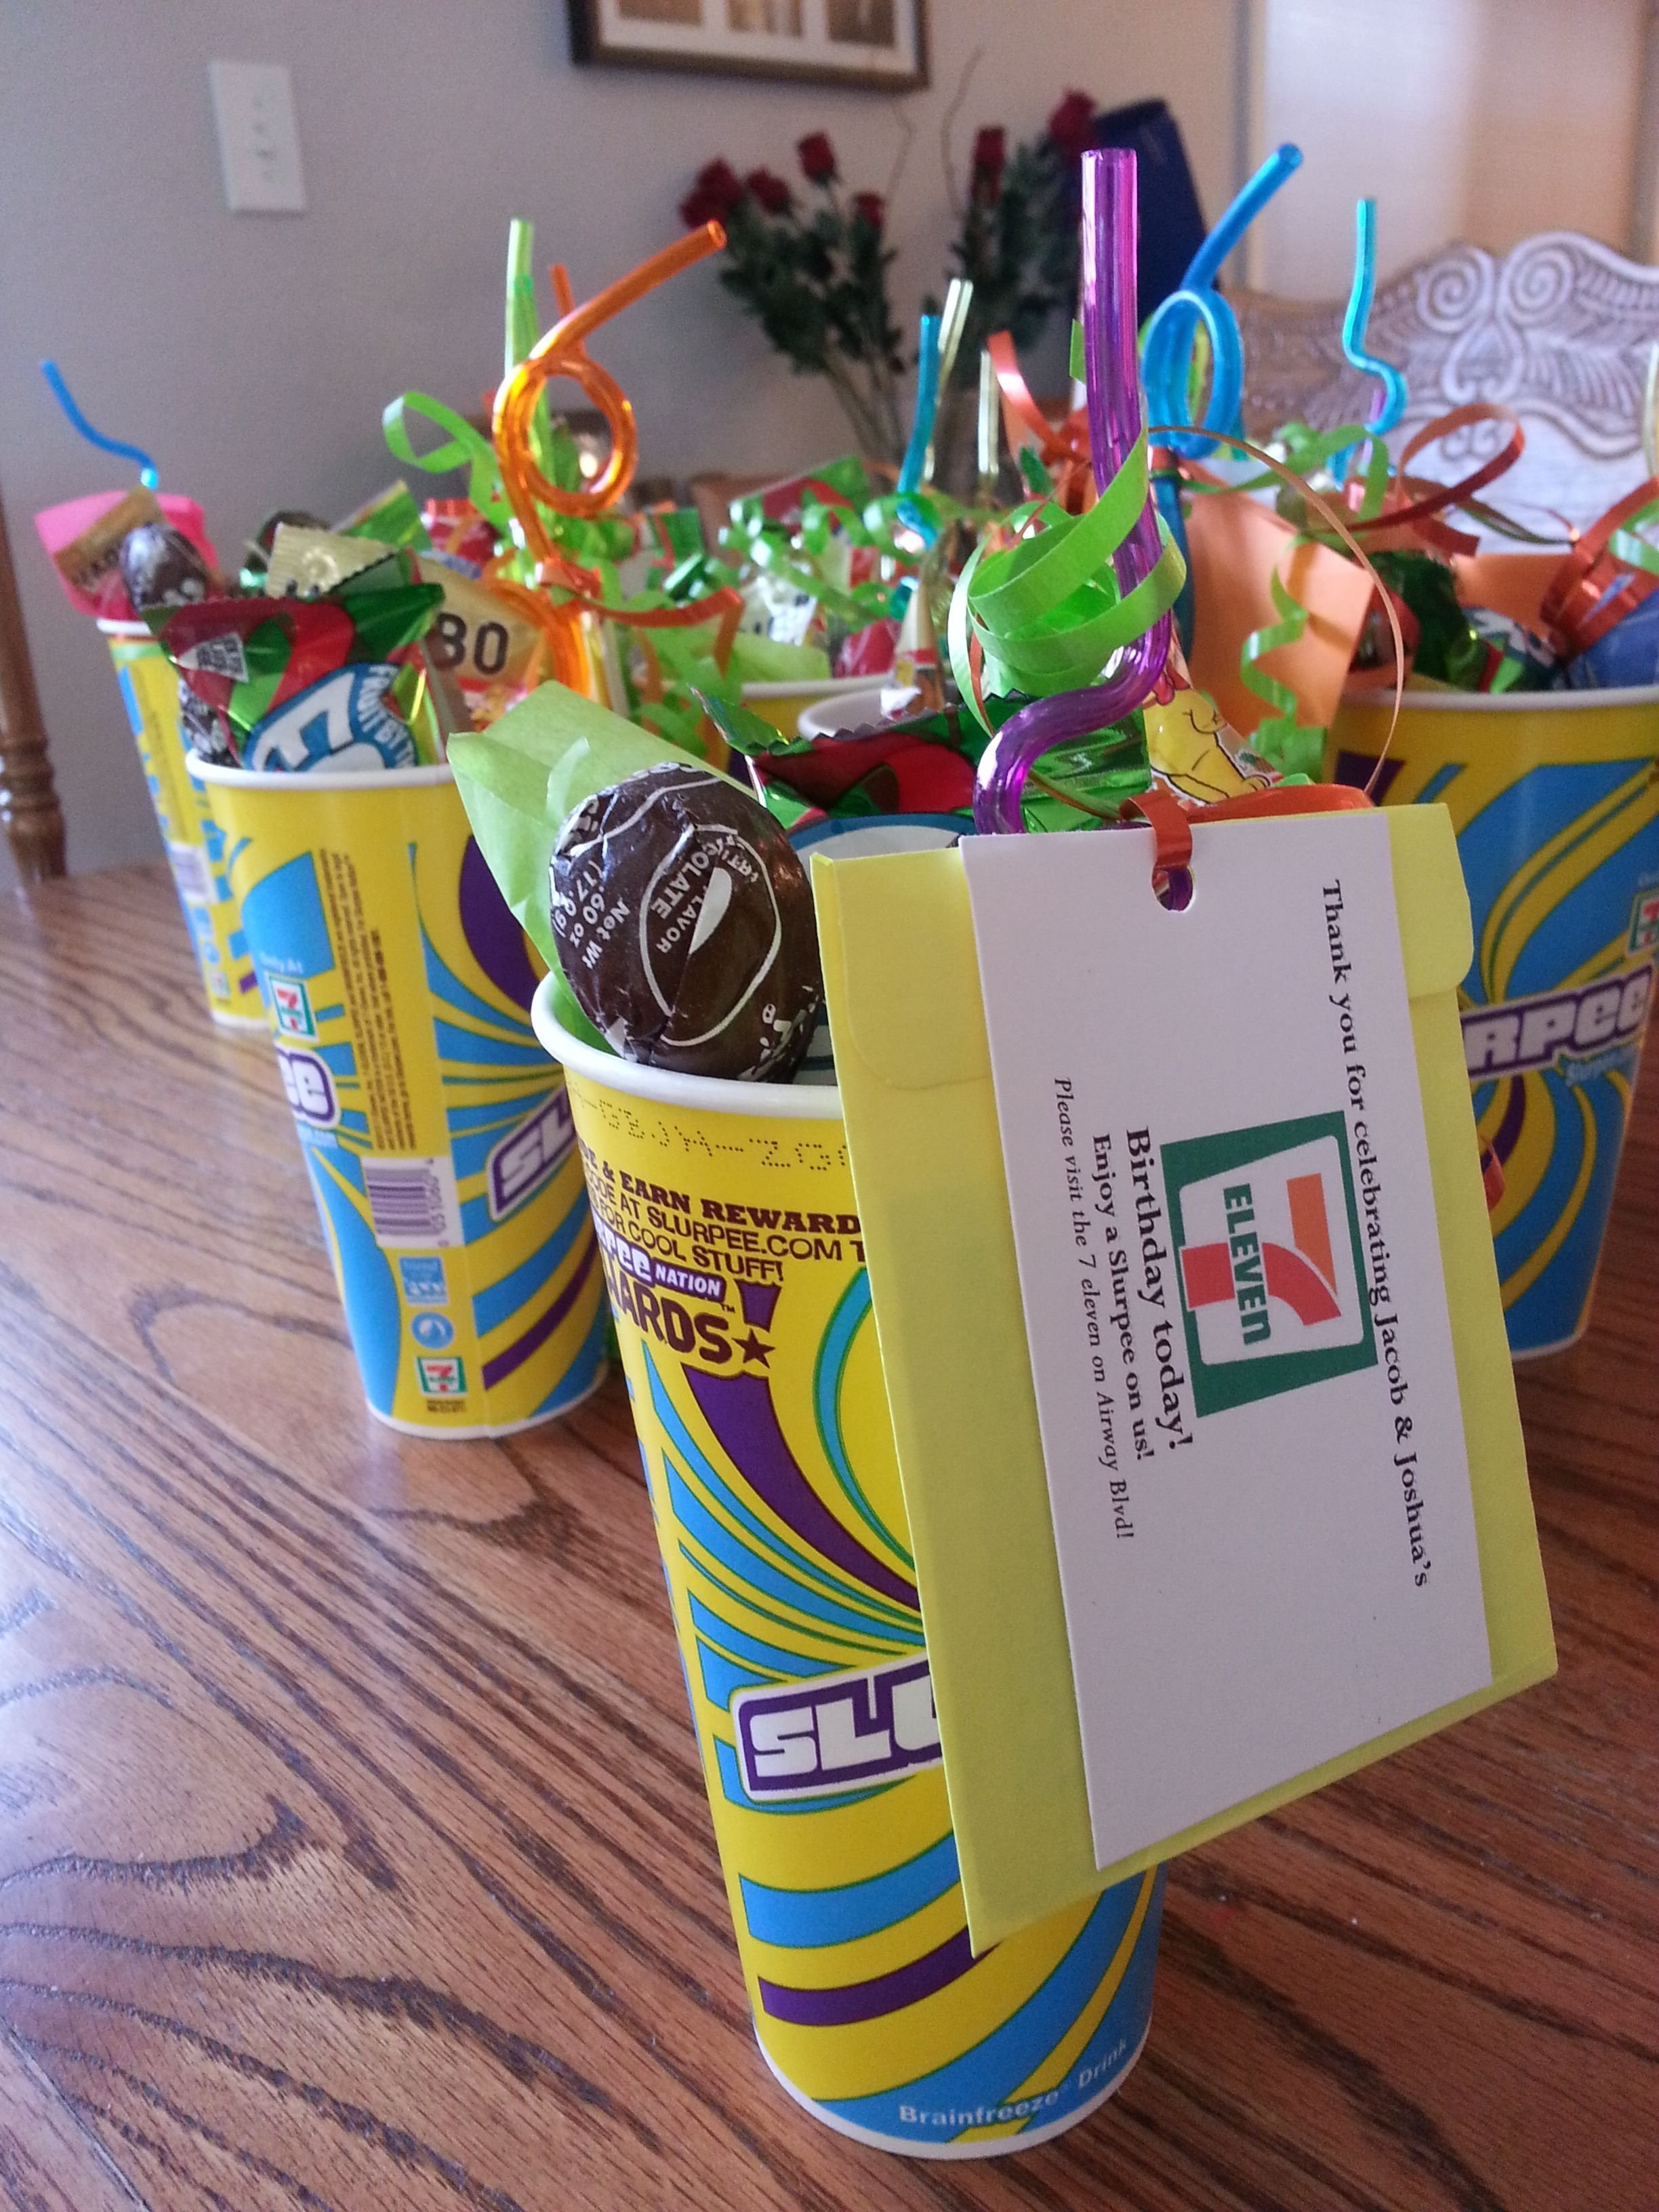 10 Stylish 11 Year Old Party Ideas my boys turned 7 and 11 years old and their birthdays are very close 30